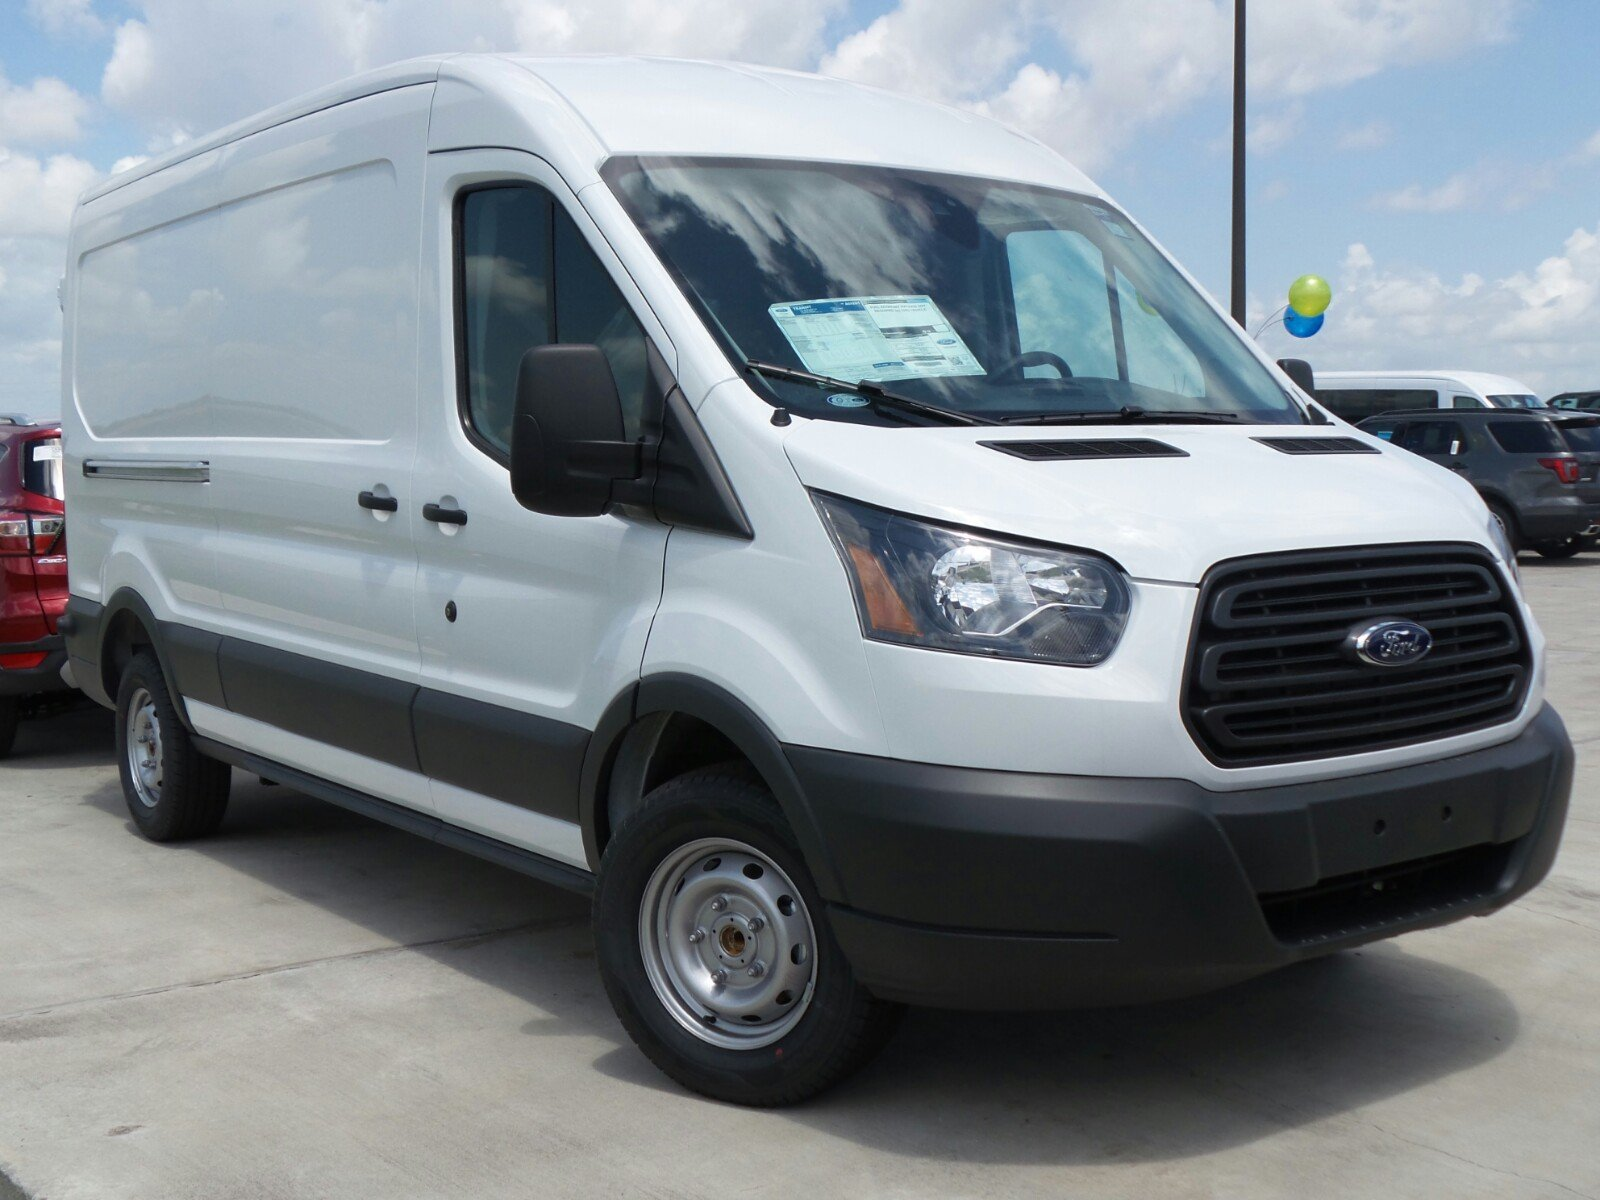 new 2017 ford transit van full size cargo van in port lavaca ka89281 port lavaca ford. Black Bedroom Furniture Sets. Home Design Ideas